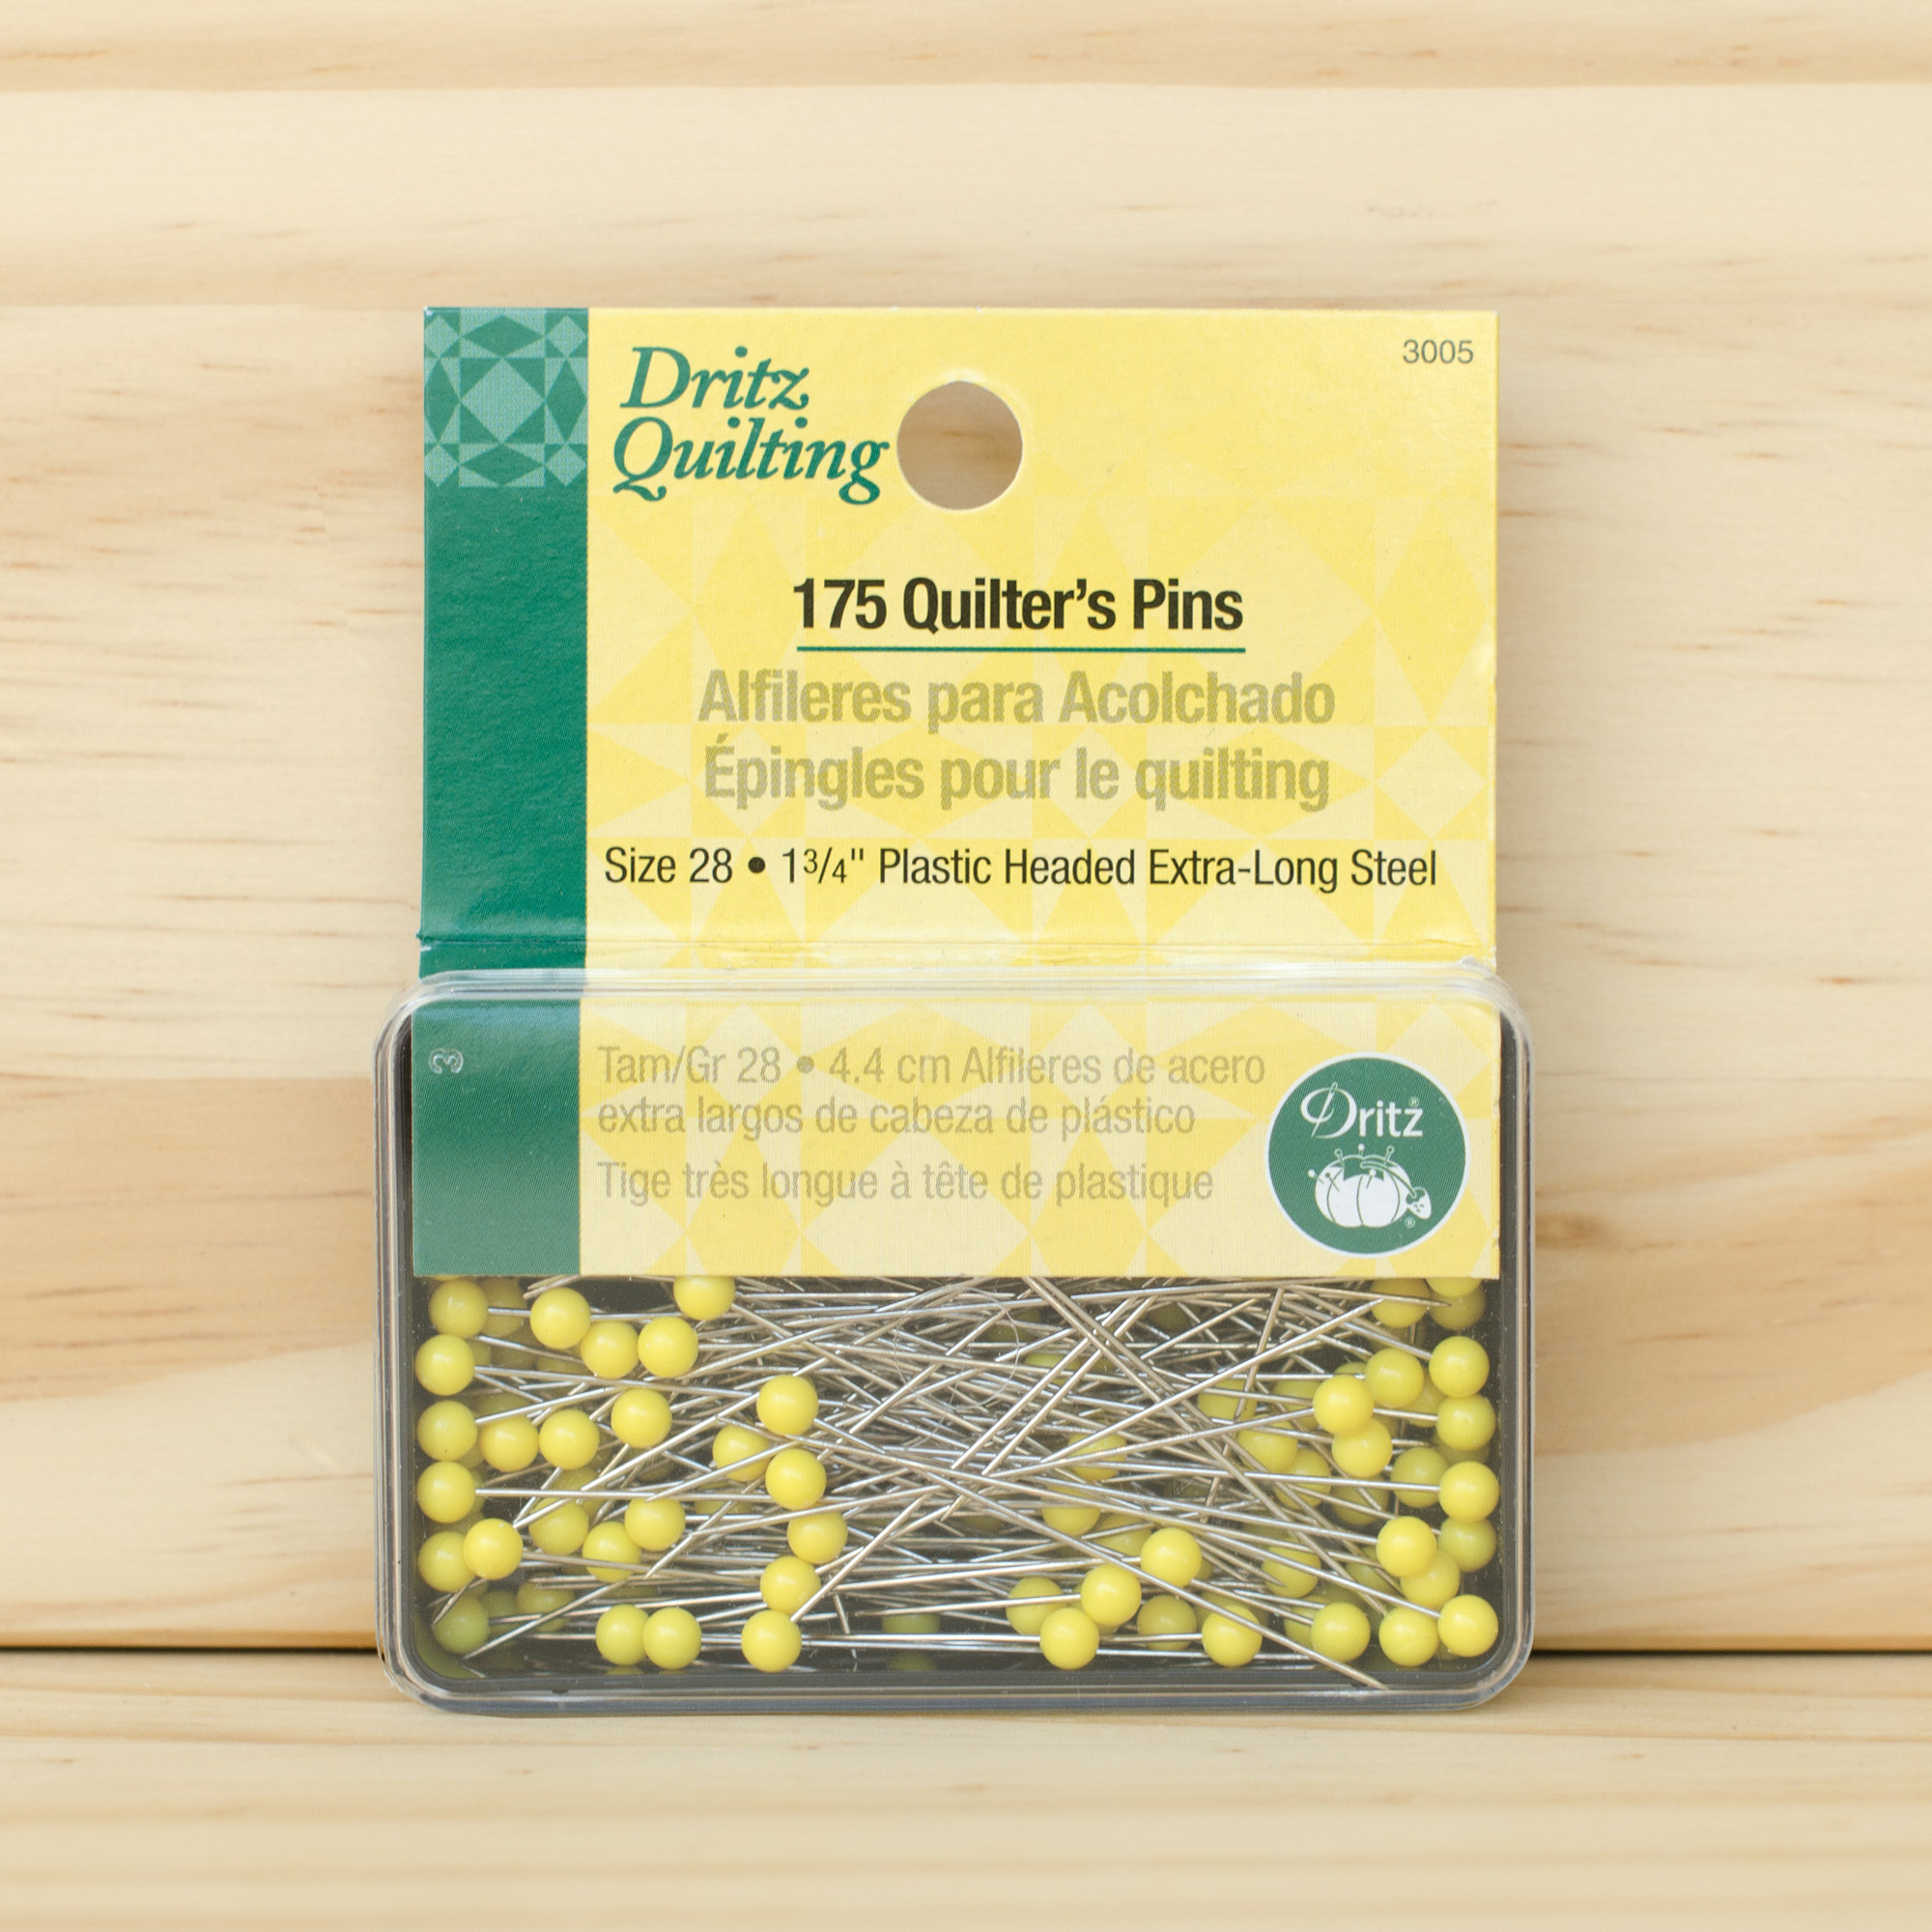 Dritz : Quilter's Pins